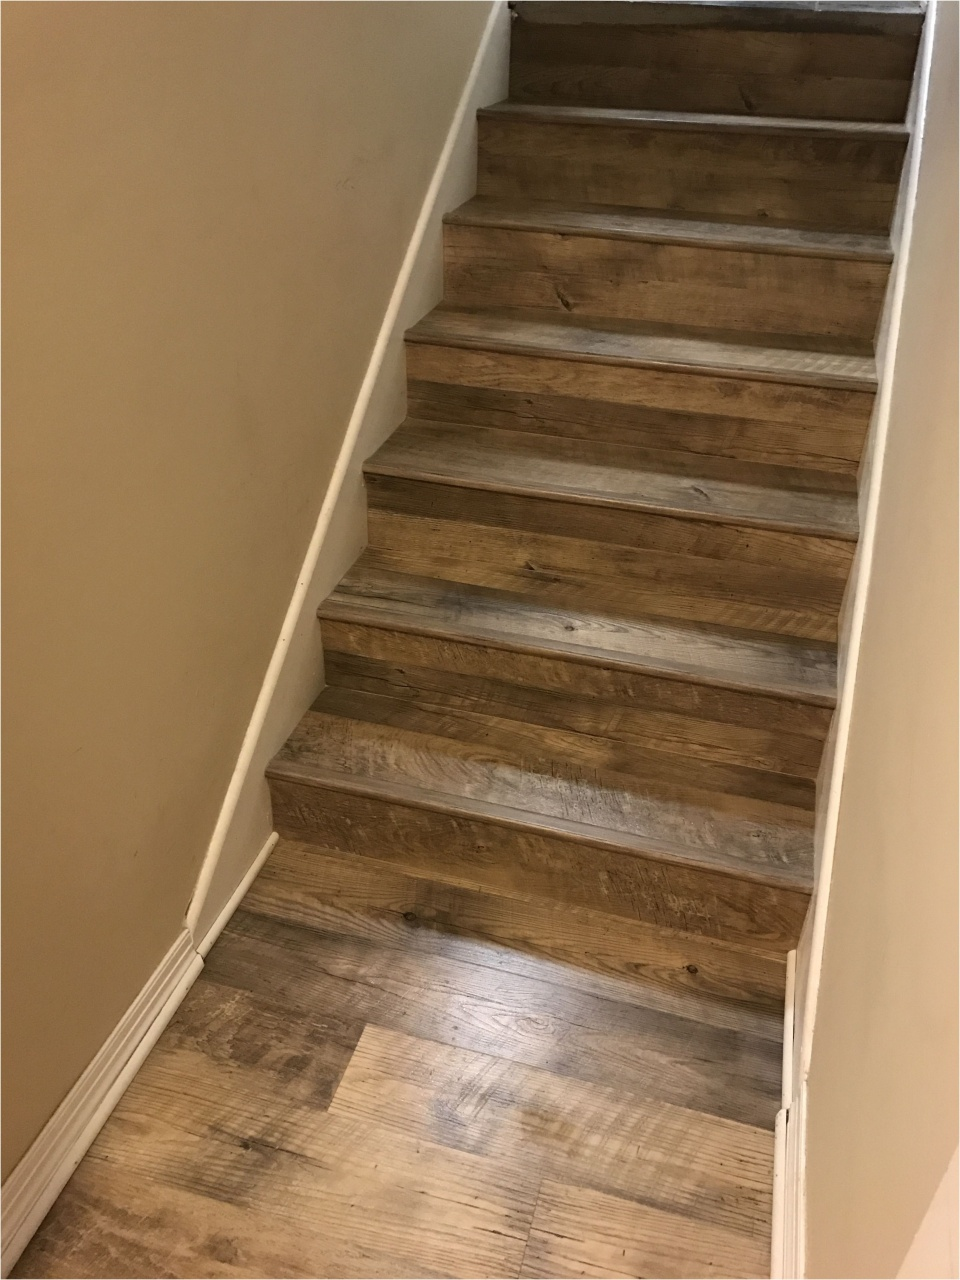 Vinyl Stair Treads With Nosing 30 Cute How To Install Hardwood Flooring Stairs Equalmarriagefl Vinyl From Vinyl Stair Treads With Nosing Pictures